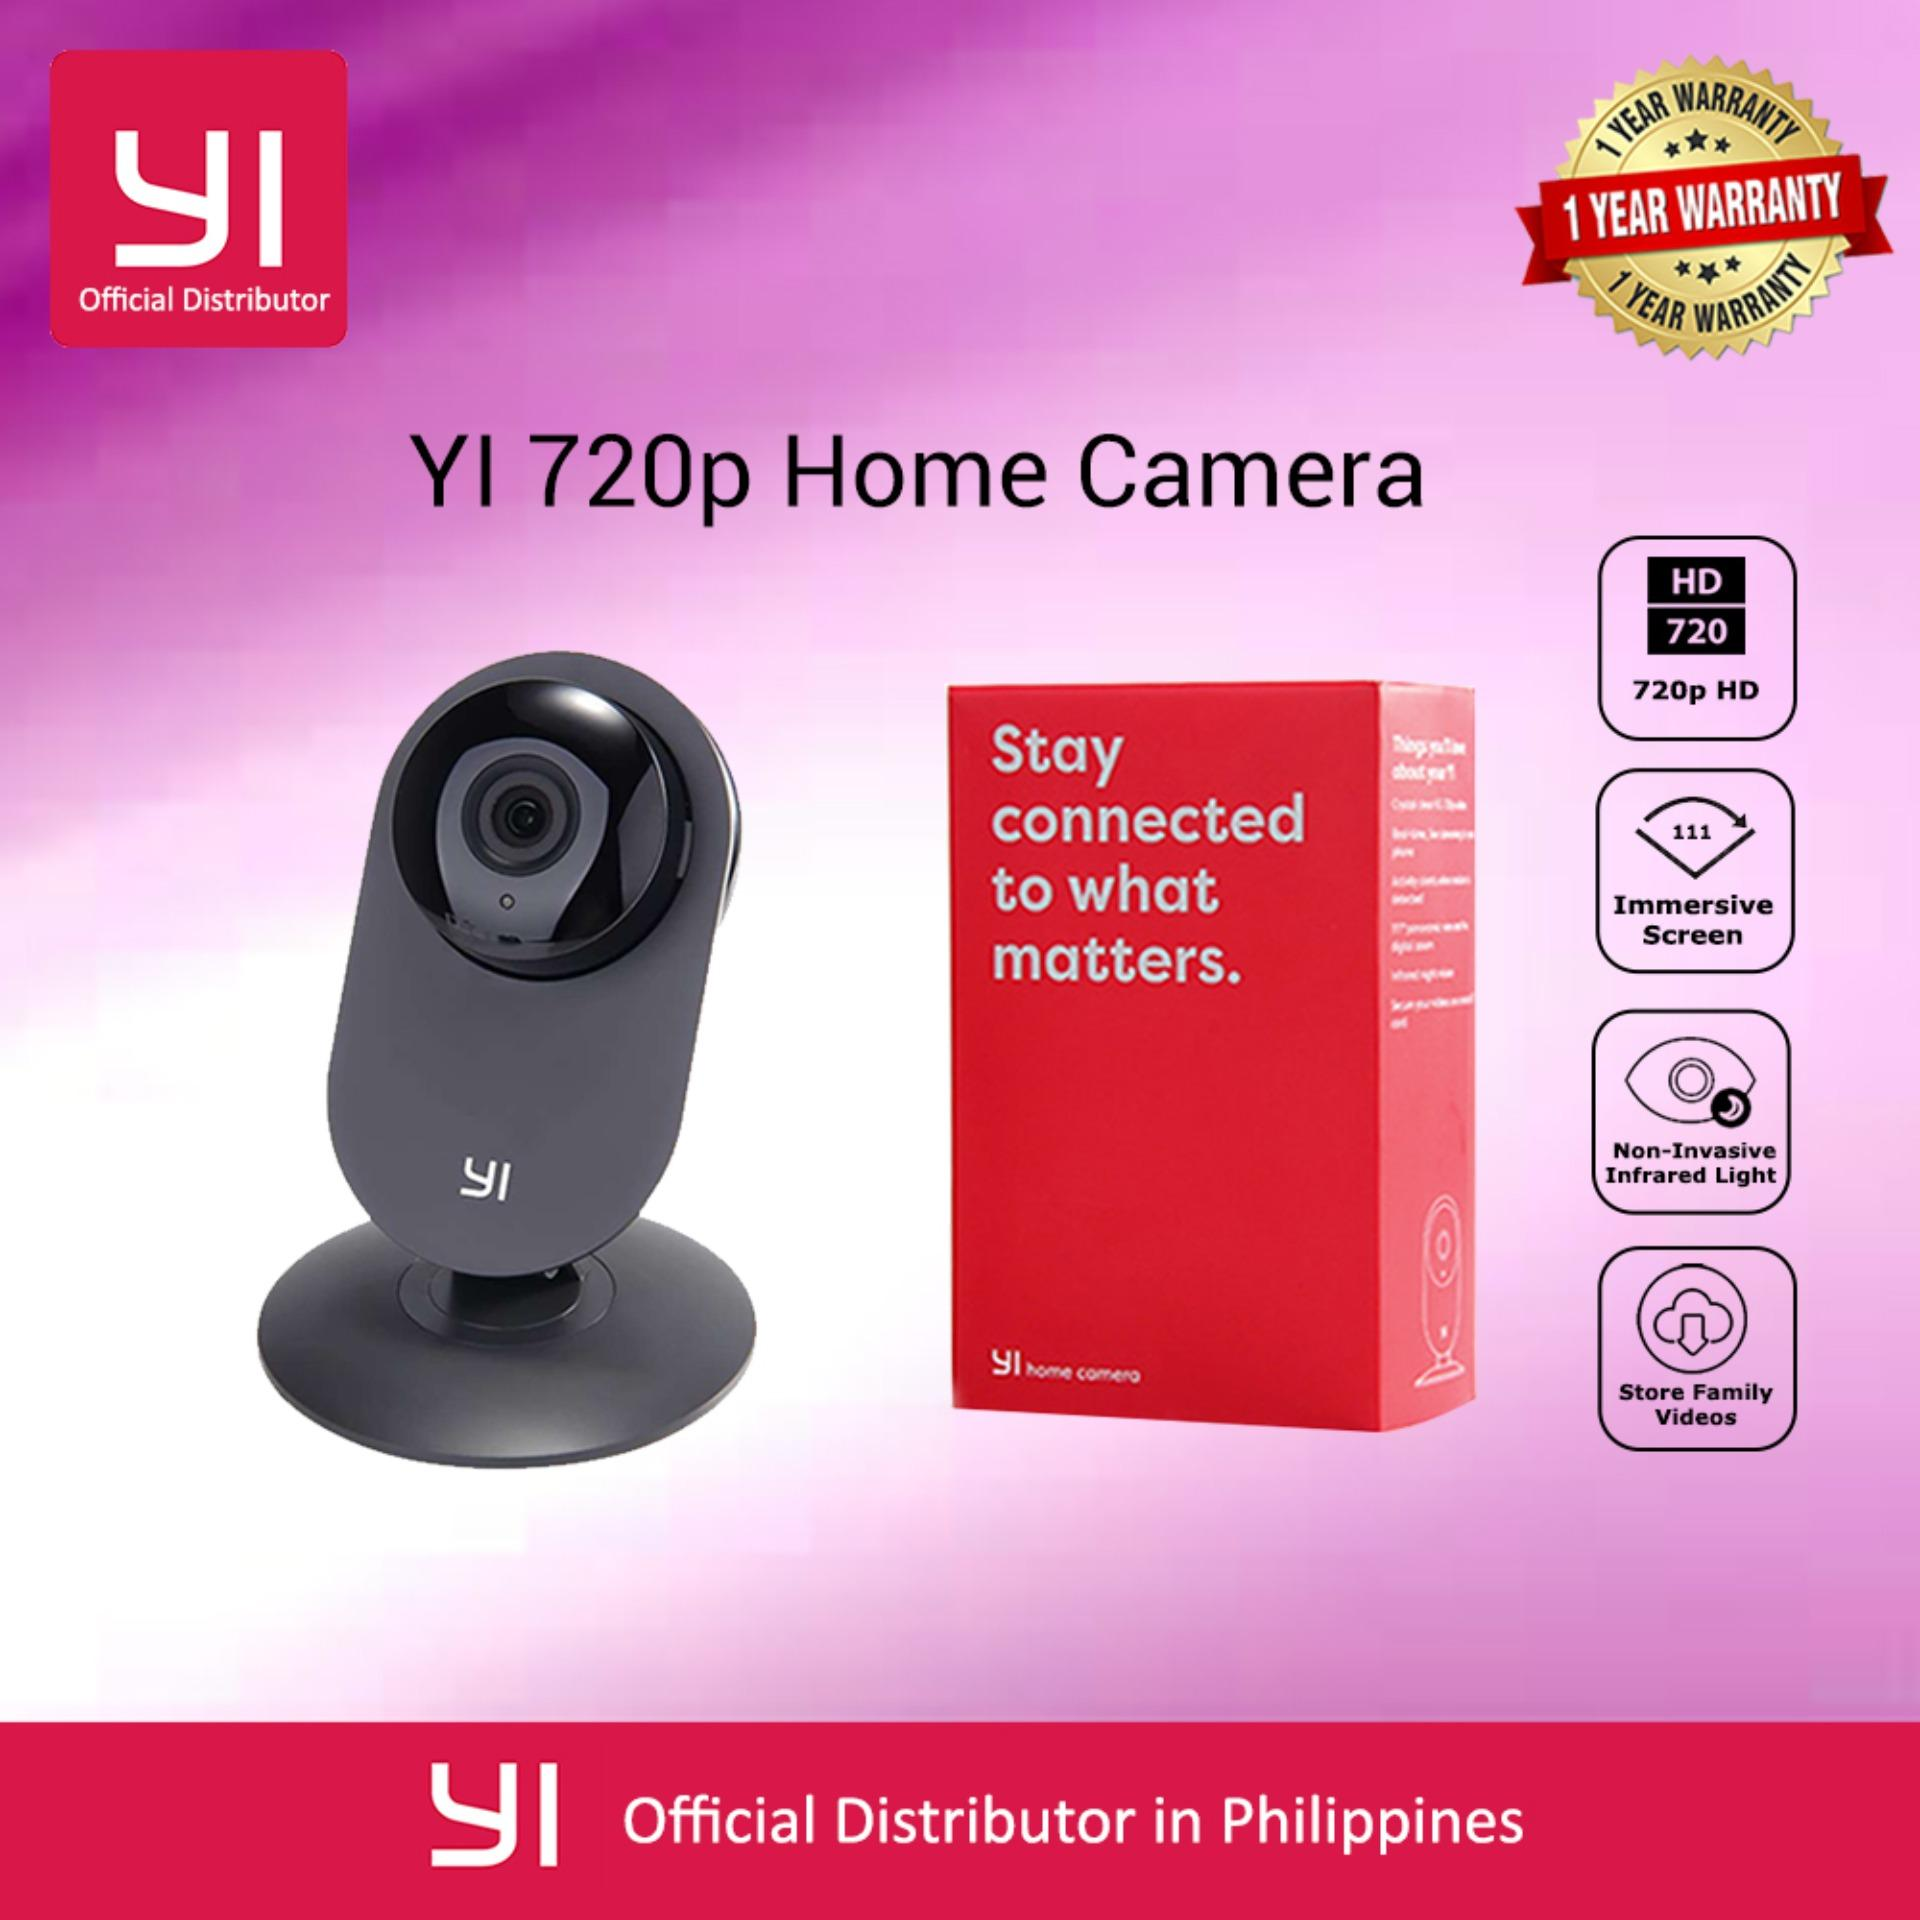 YI Home IP Cam Security Camera CCTV Monitor 720P HD Video Monitor IP Wireless Network Surveillance Security Night Vision Alert Motion Detection EU/US Version